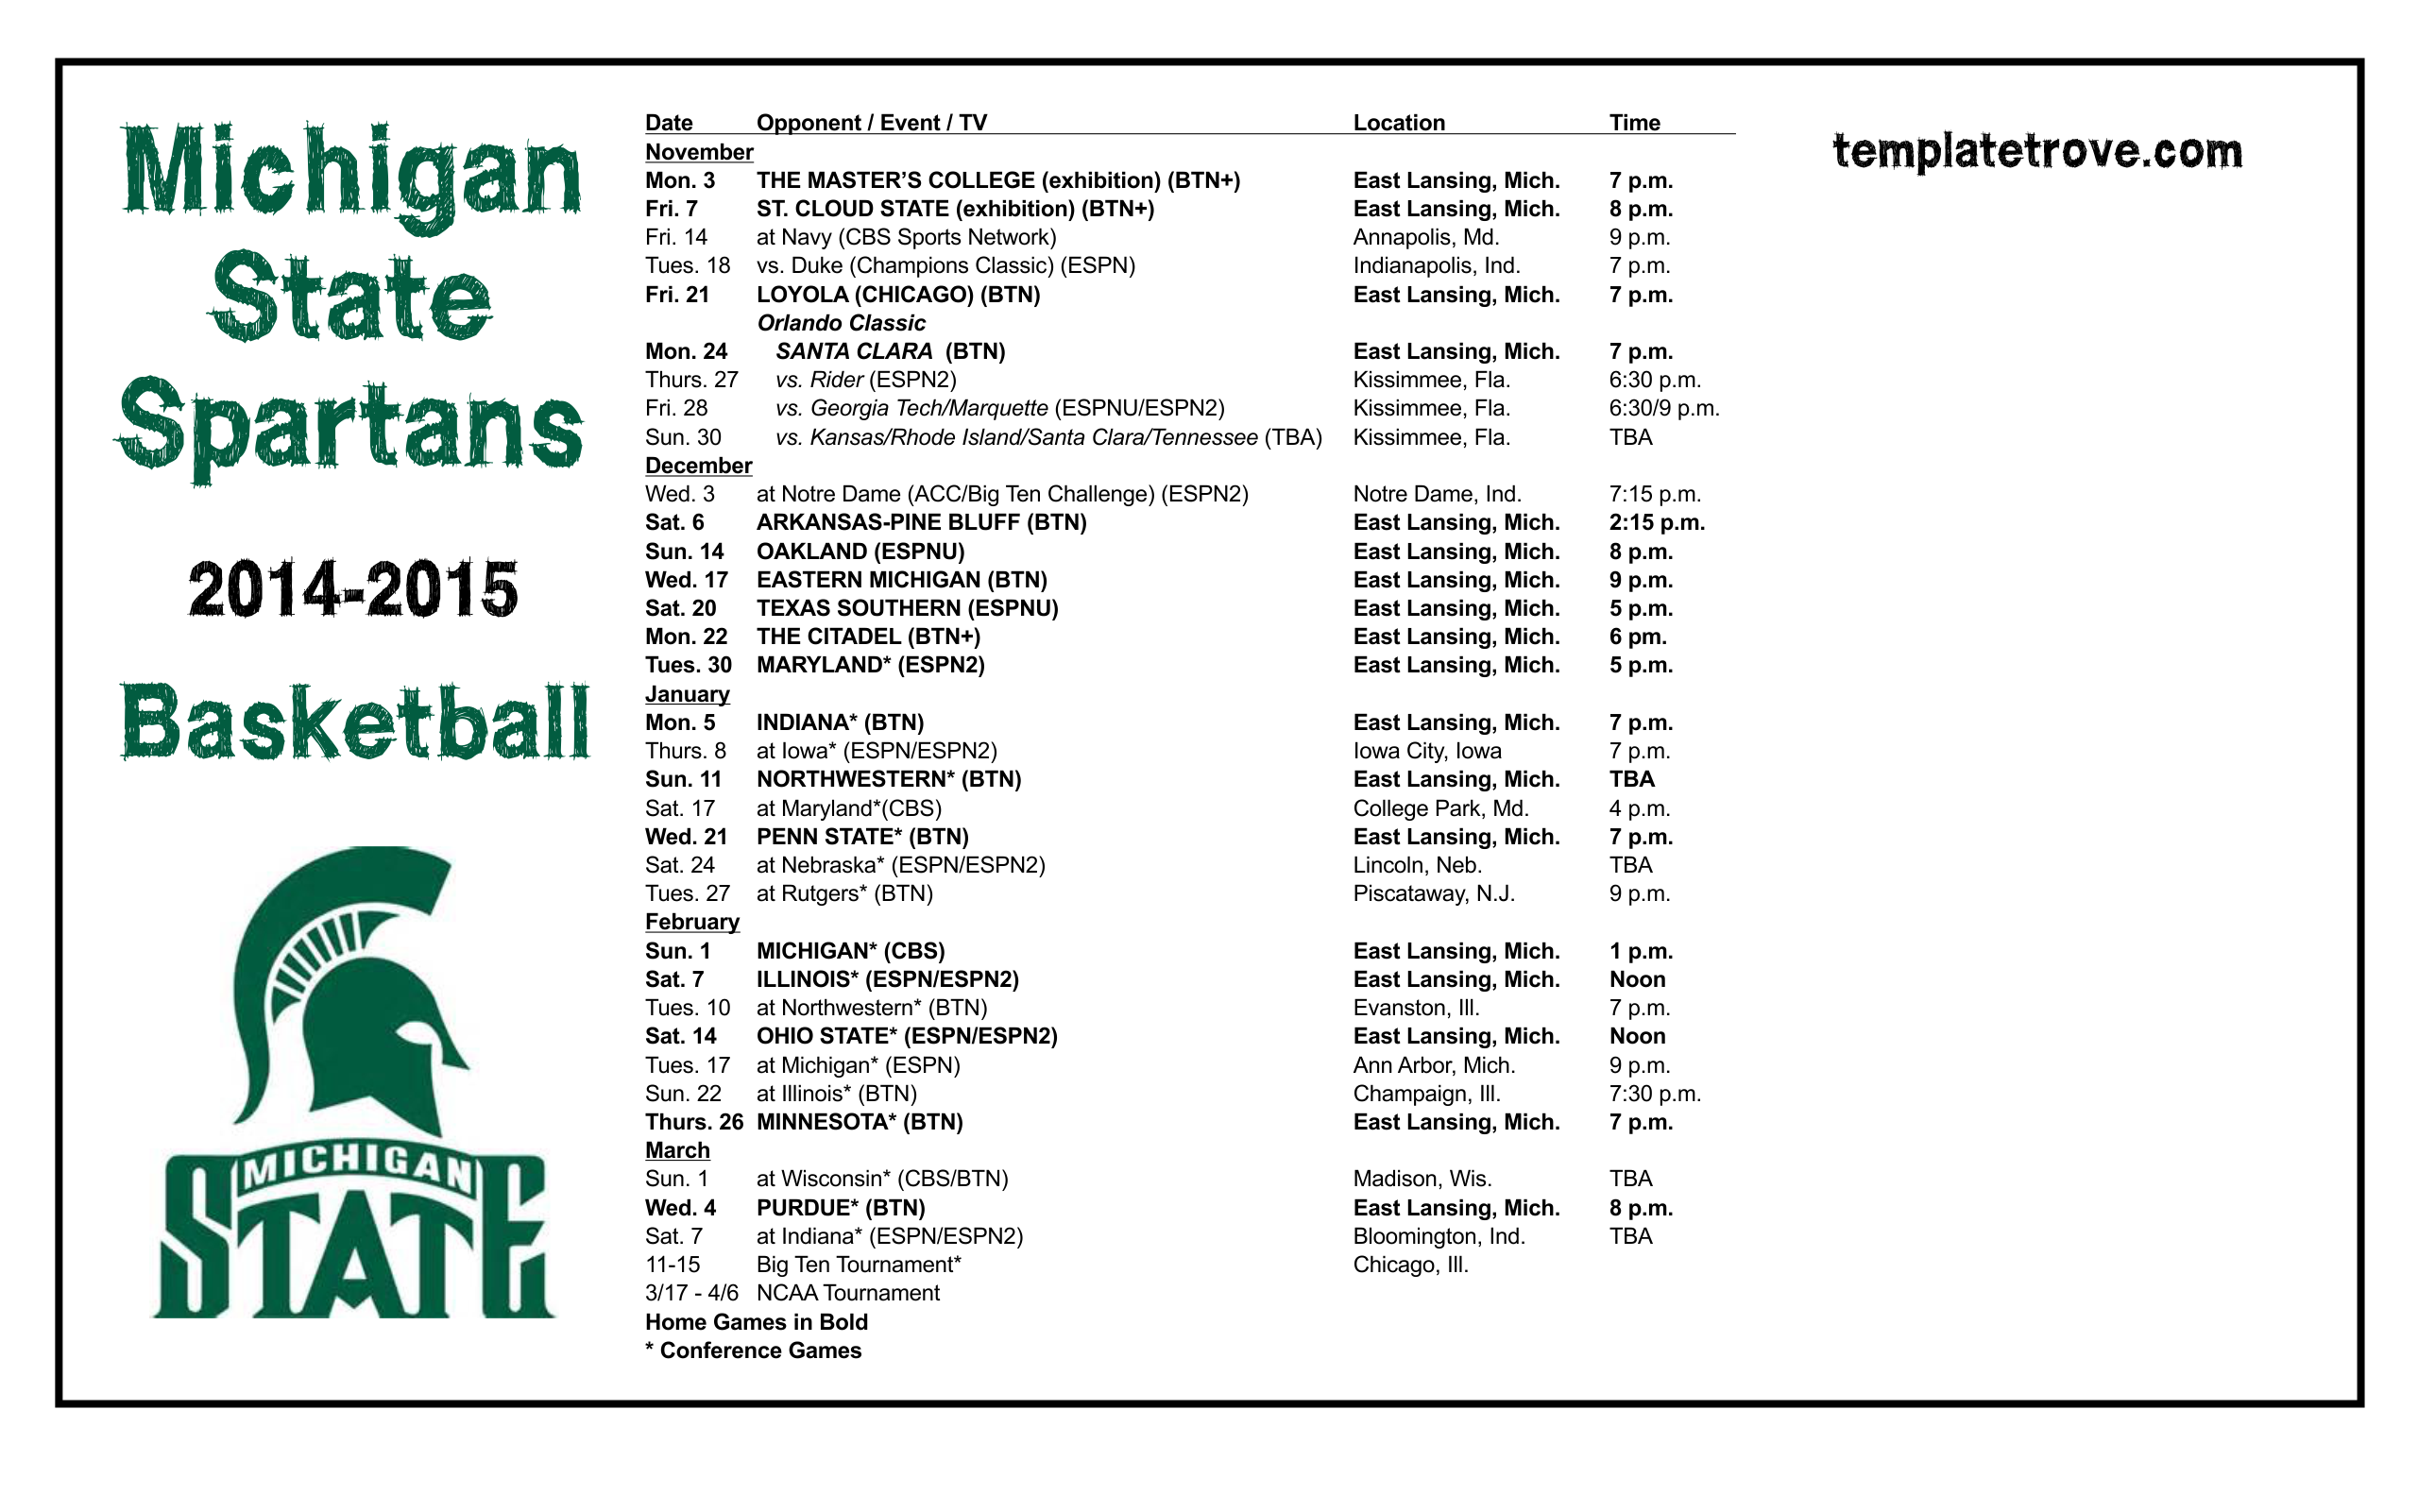 Sdsu Schedule Basketball 2014 2015 2015 Calendar Printable 2560x1601